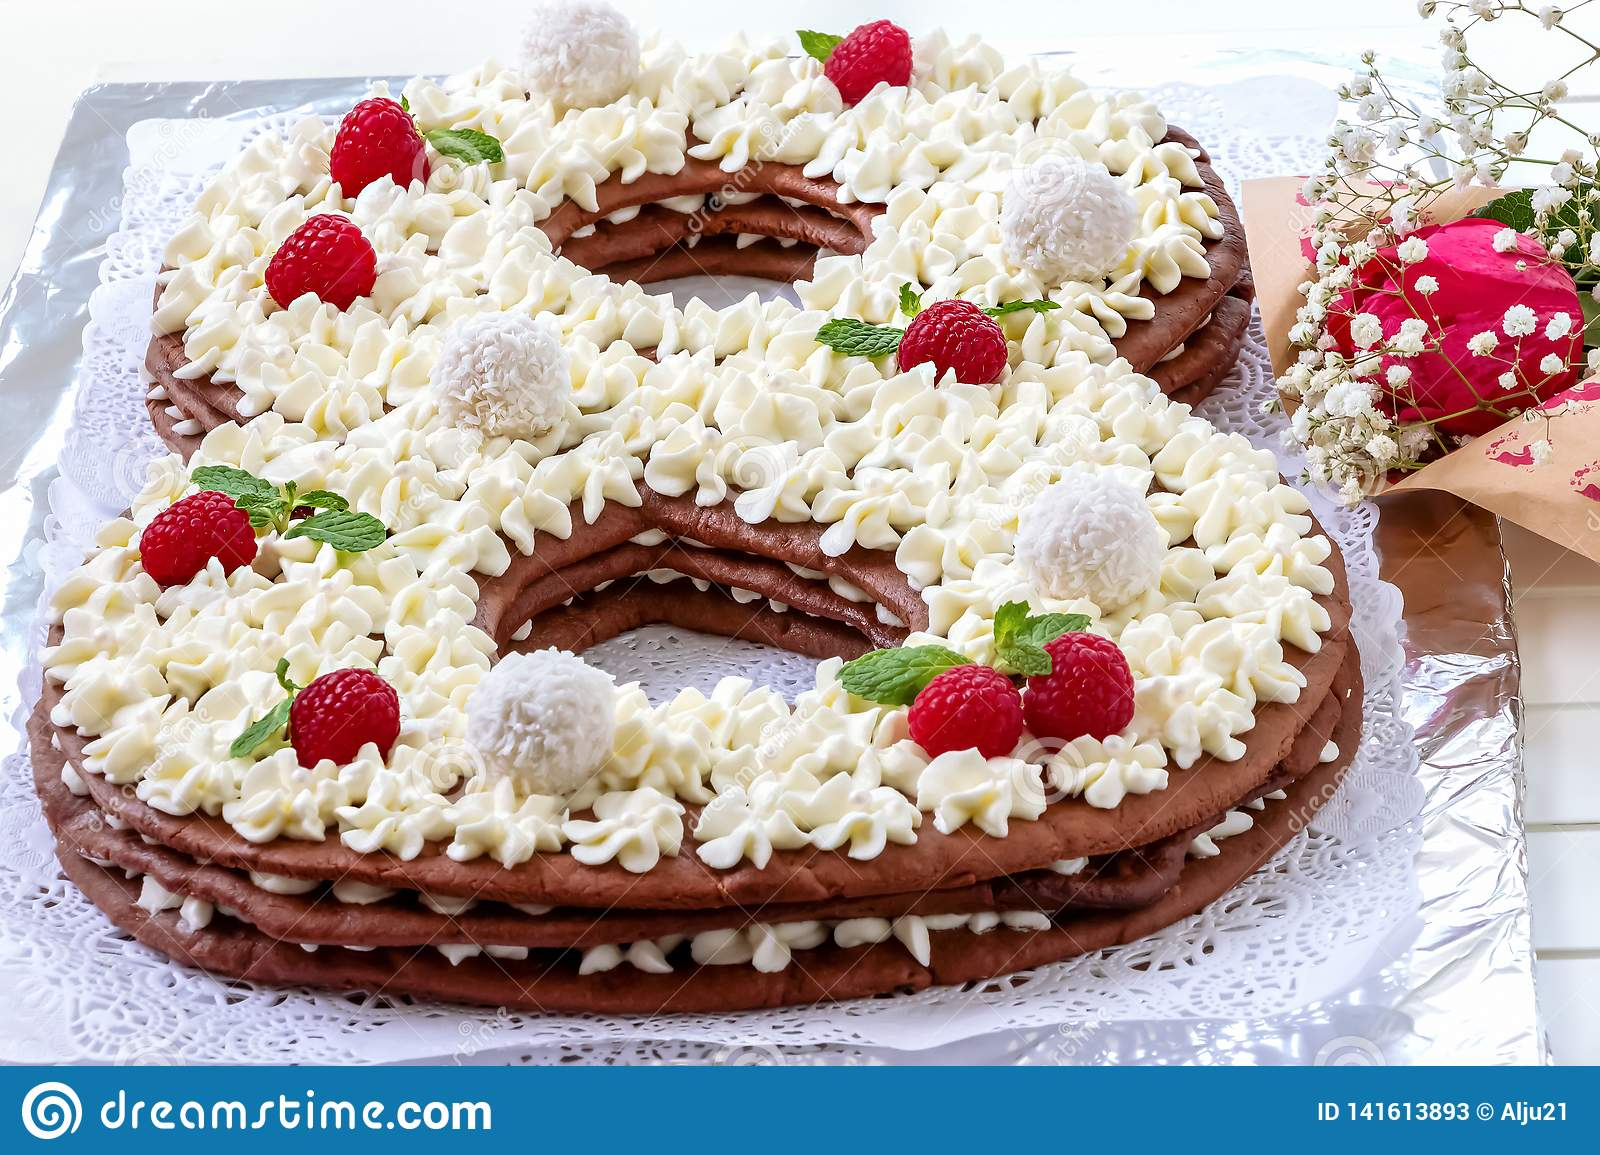 Big number cake and red rose flower. Cake shape of number 8 decorated white creamcheese, raspberry and coconut candy.